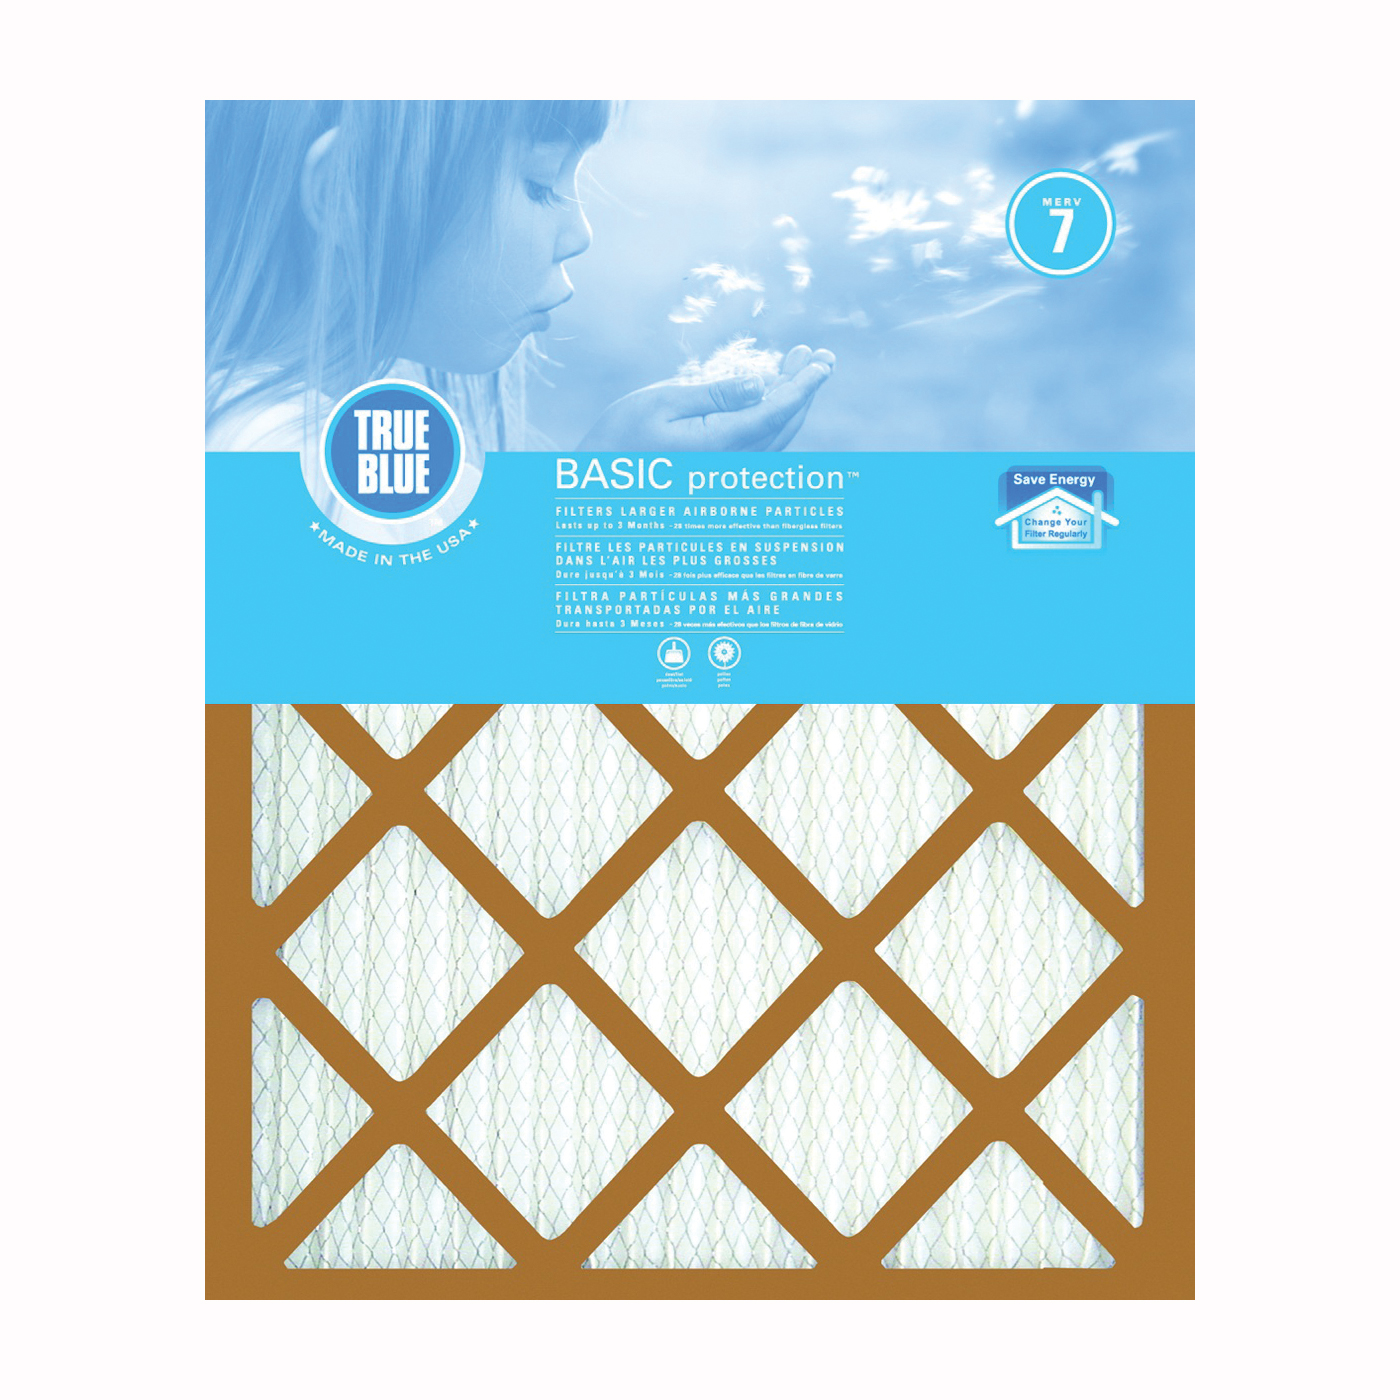 Picture of True Blue 220251 Air Filter, 25 in L, 20 in W, 7 MERV, 53.7 % Filter Efficiency, Synthetic Pleated Filter Media